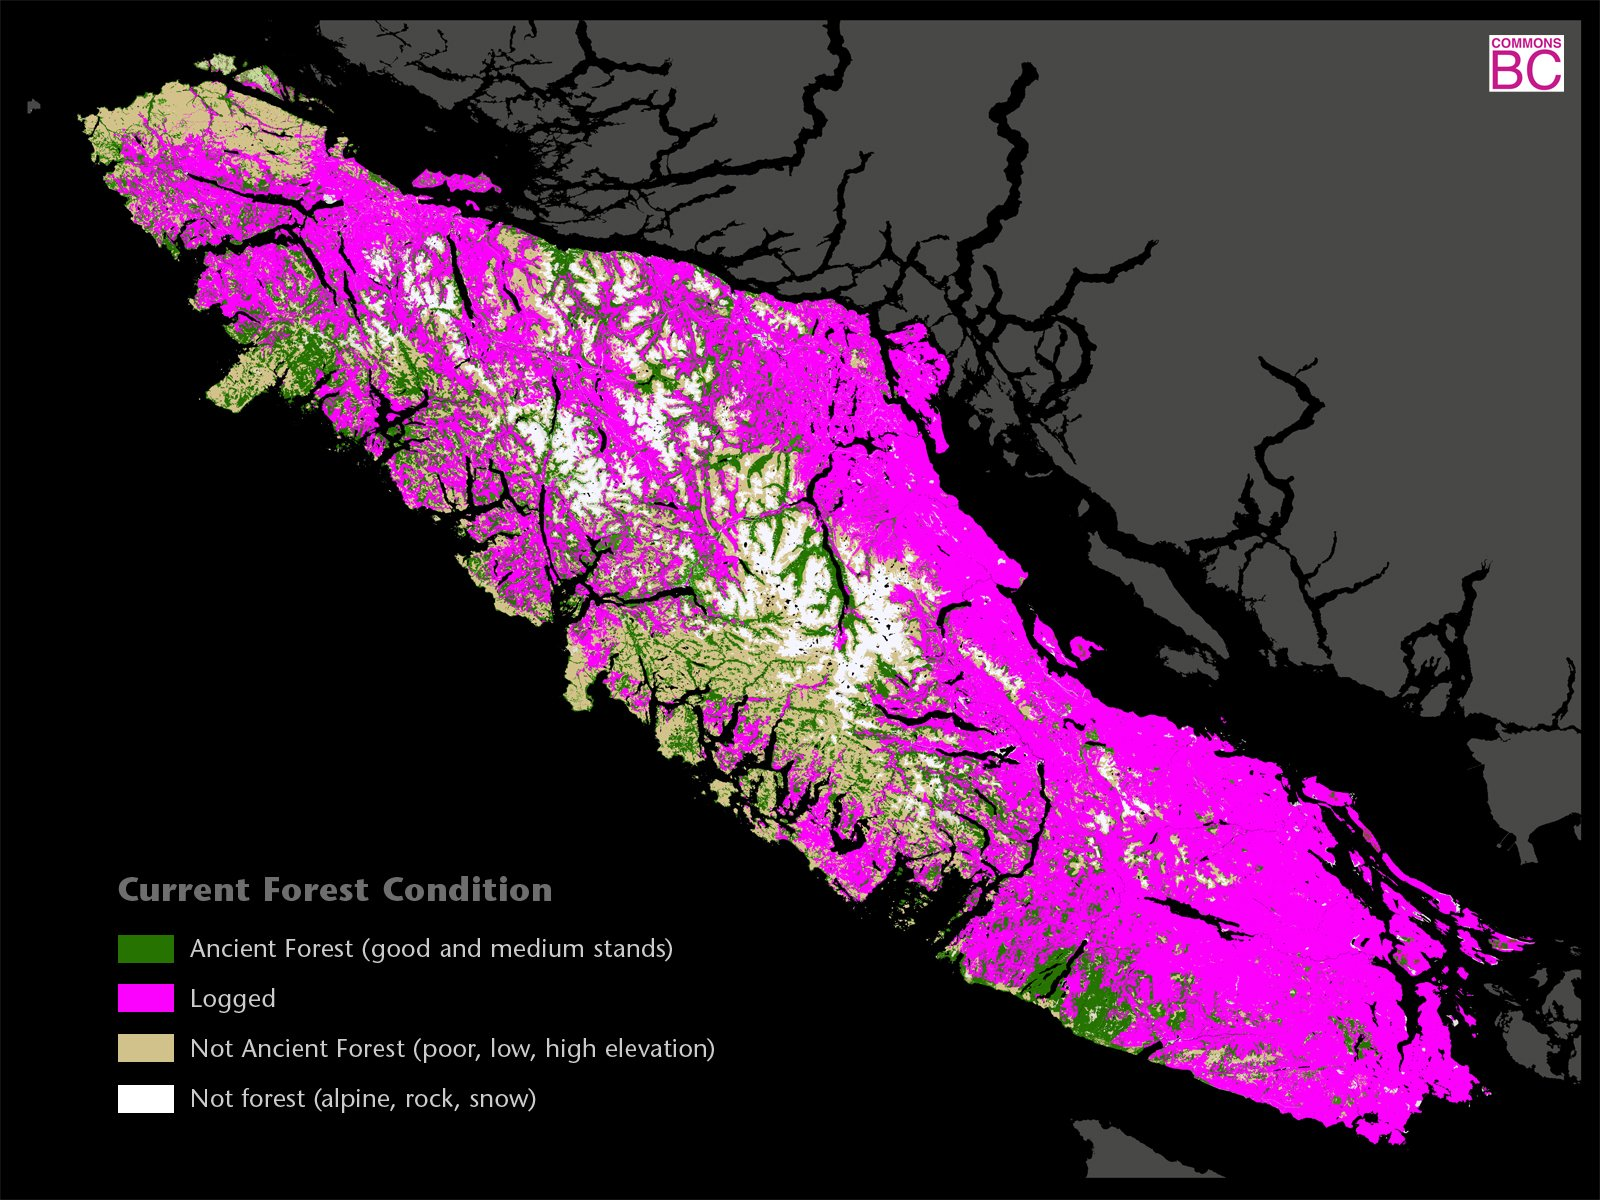 Logged areas of Vancouver Island - Map supplied by Commons BC